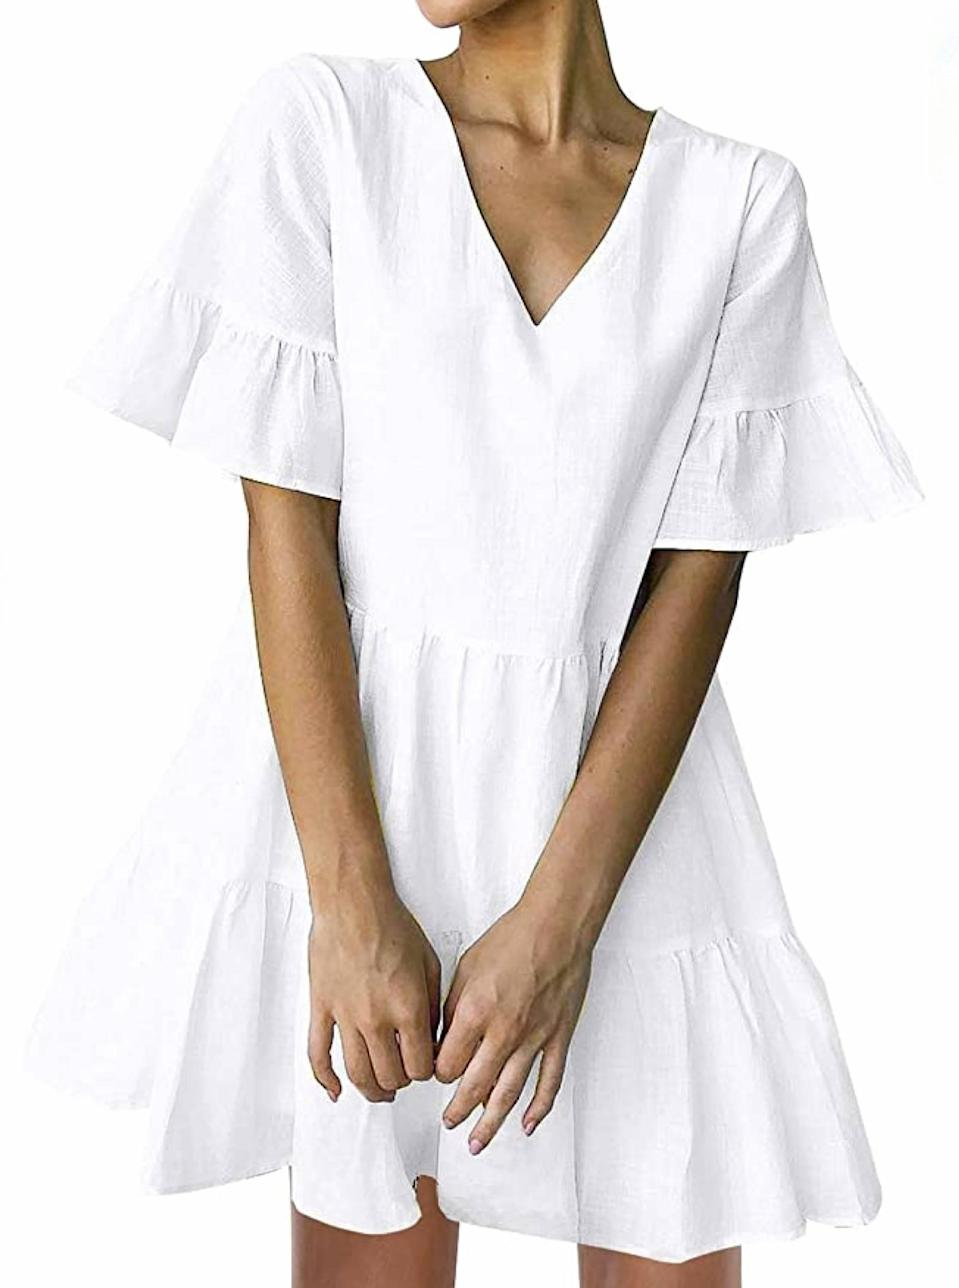 """We love the silhouette of this ruffly short sleeve pick—the statement sleeves will bring pure spring energy and optimism to your closet. Offset the spritely vibe with a pair of Dr. Martens and a crossbody bag. $20, Amazon. <a href=""""https://www.amazon.com/FANCYINN-Womens-Pockets-Sleeve-Ruffle/dp/B07Q64T78B/"""" rel=""""nofollow noopener"""" target=""""_blank"""" data-ylk=""""slk:Get it now!"""" class=""""link rapid-noclick-resp"""">Get it now!</a>"""